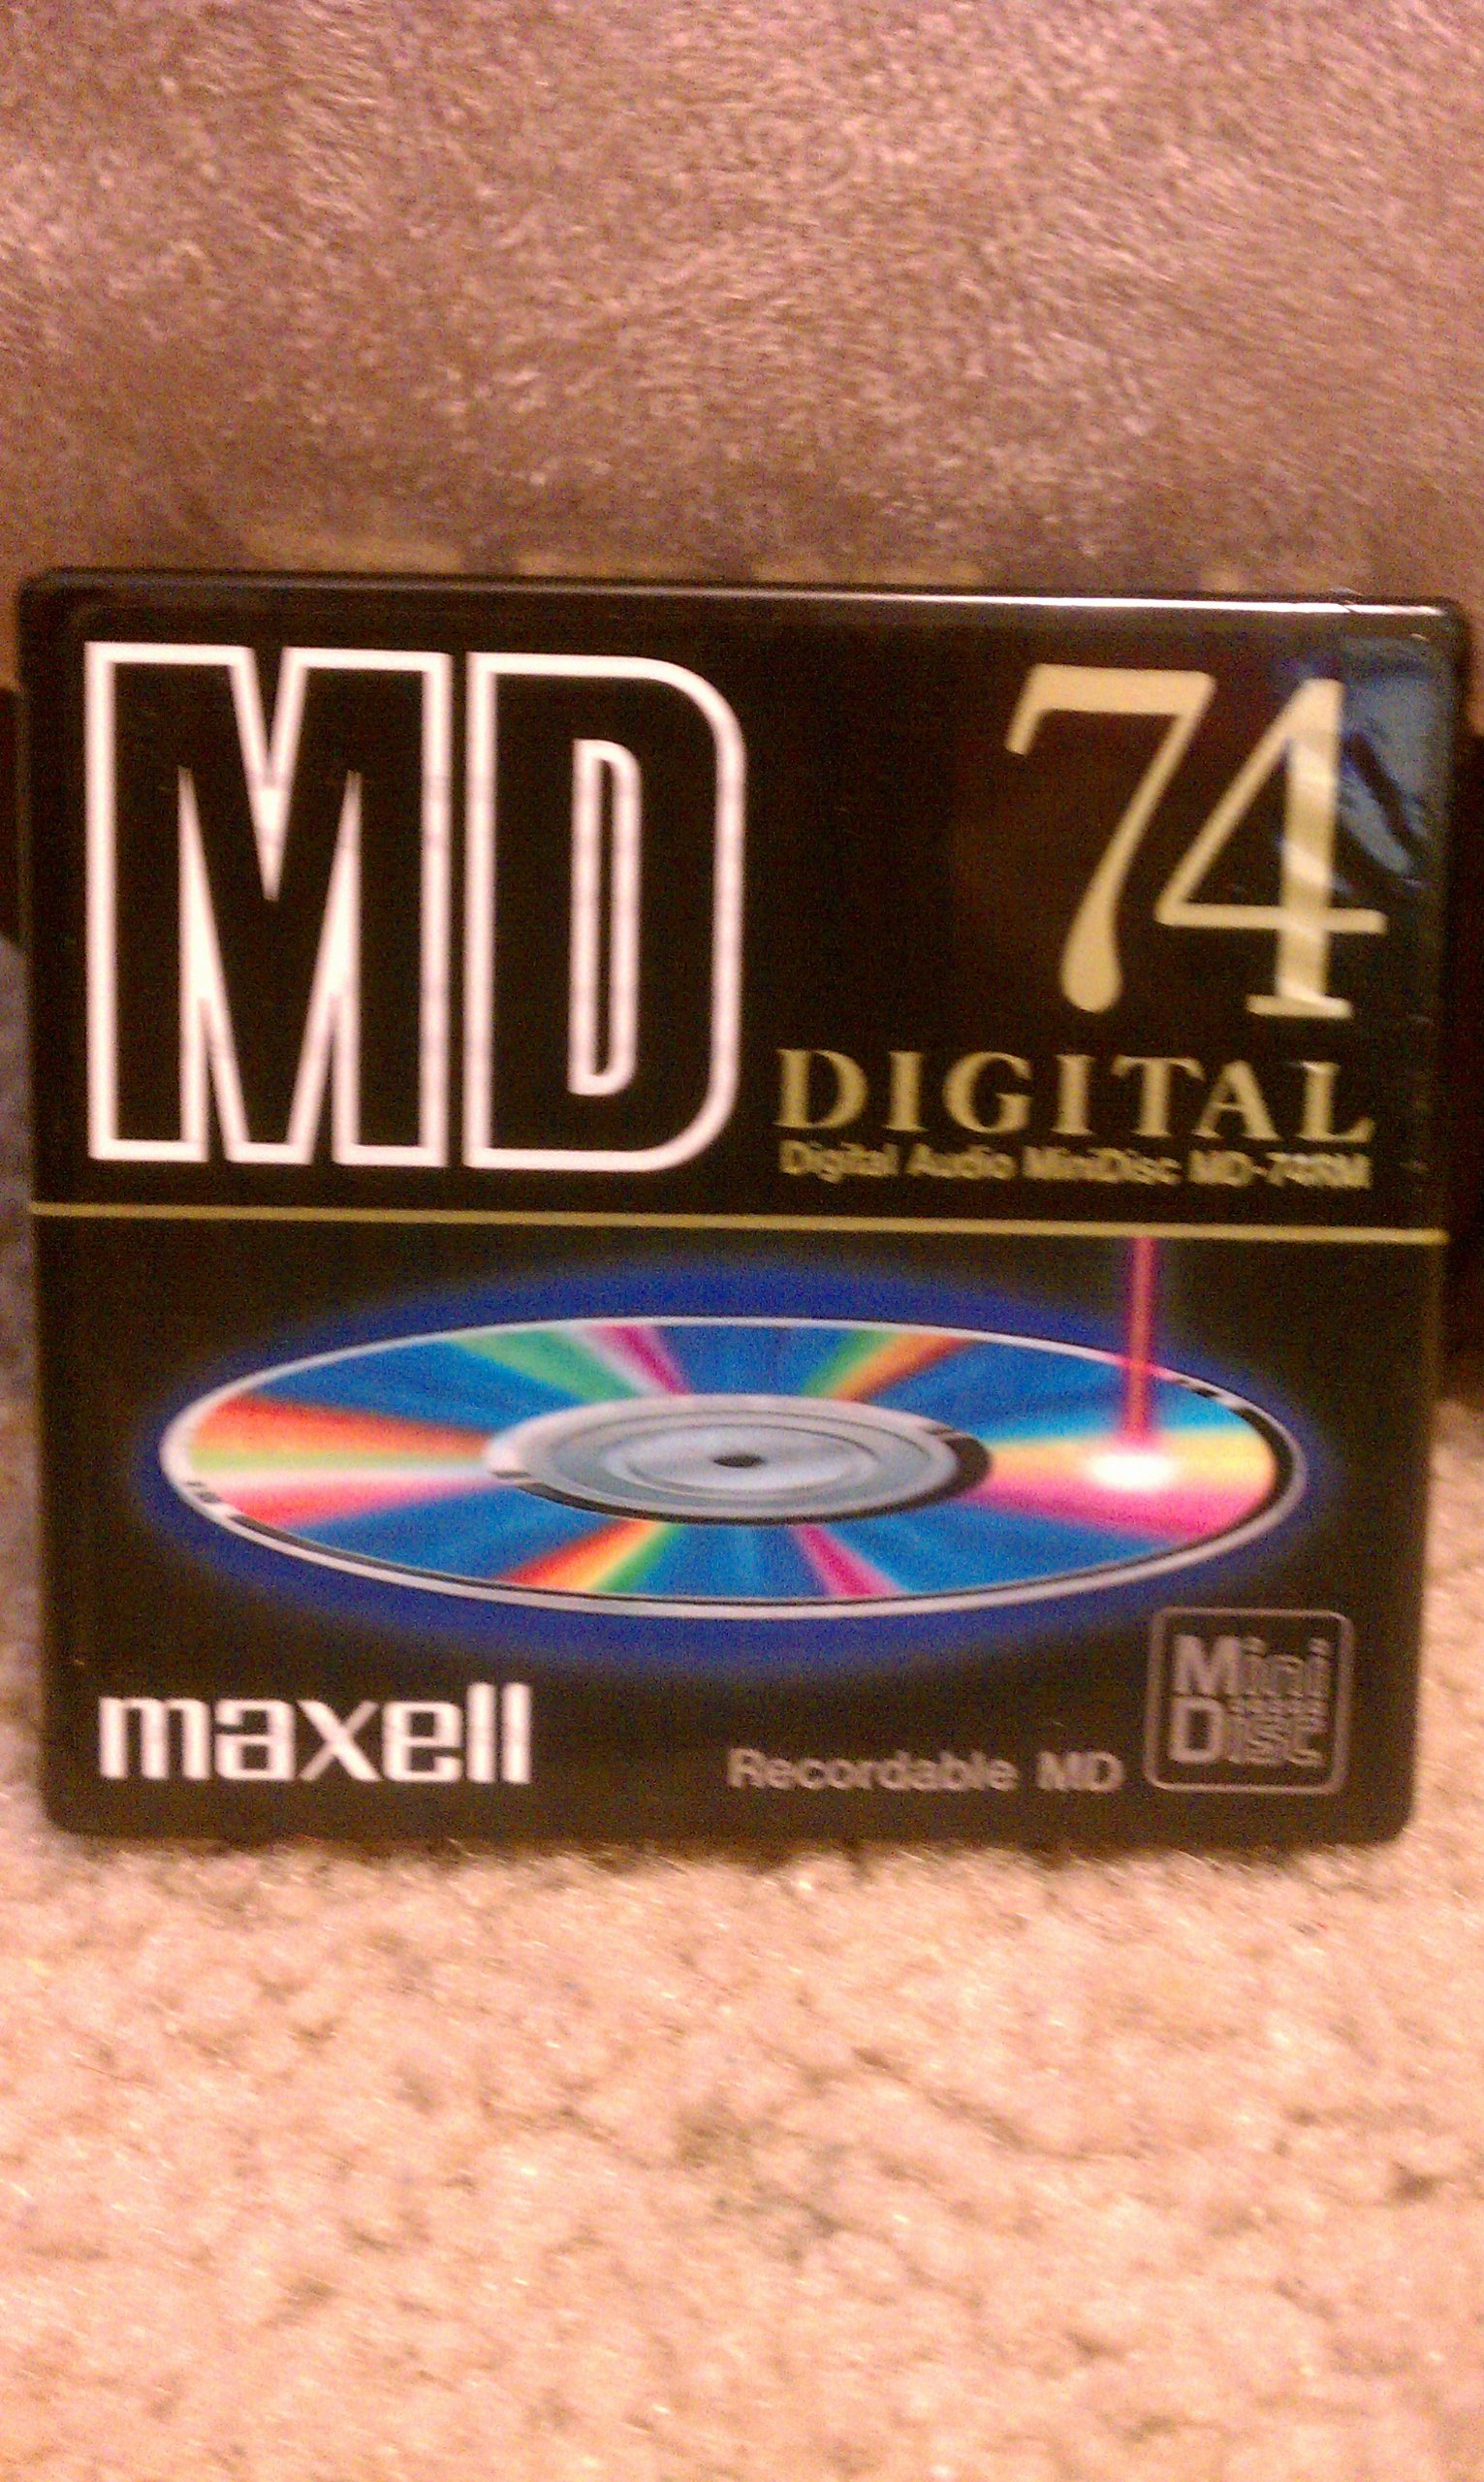 Maxell Digital Recordable Md 74